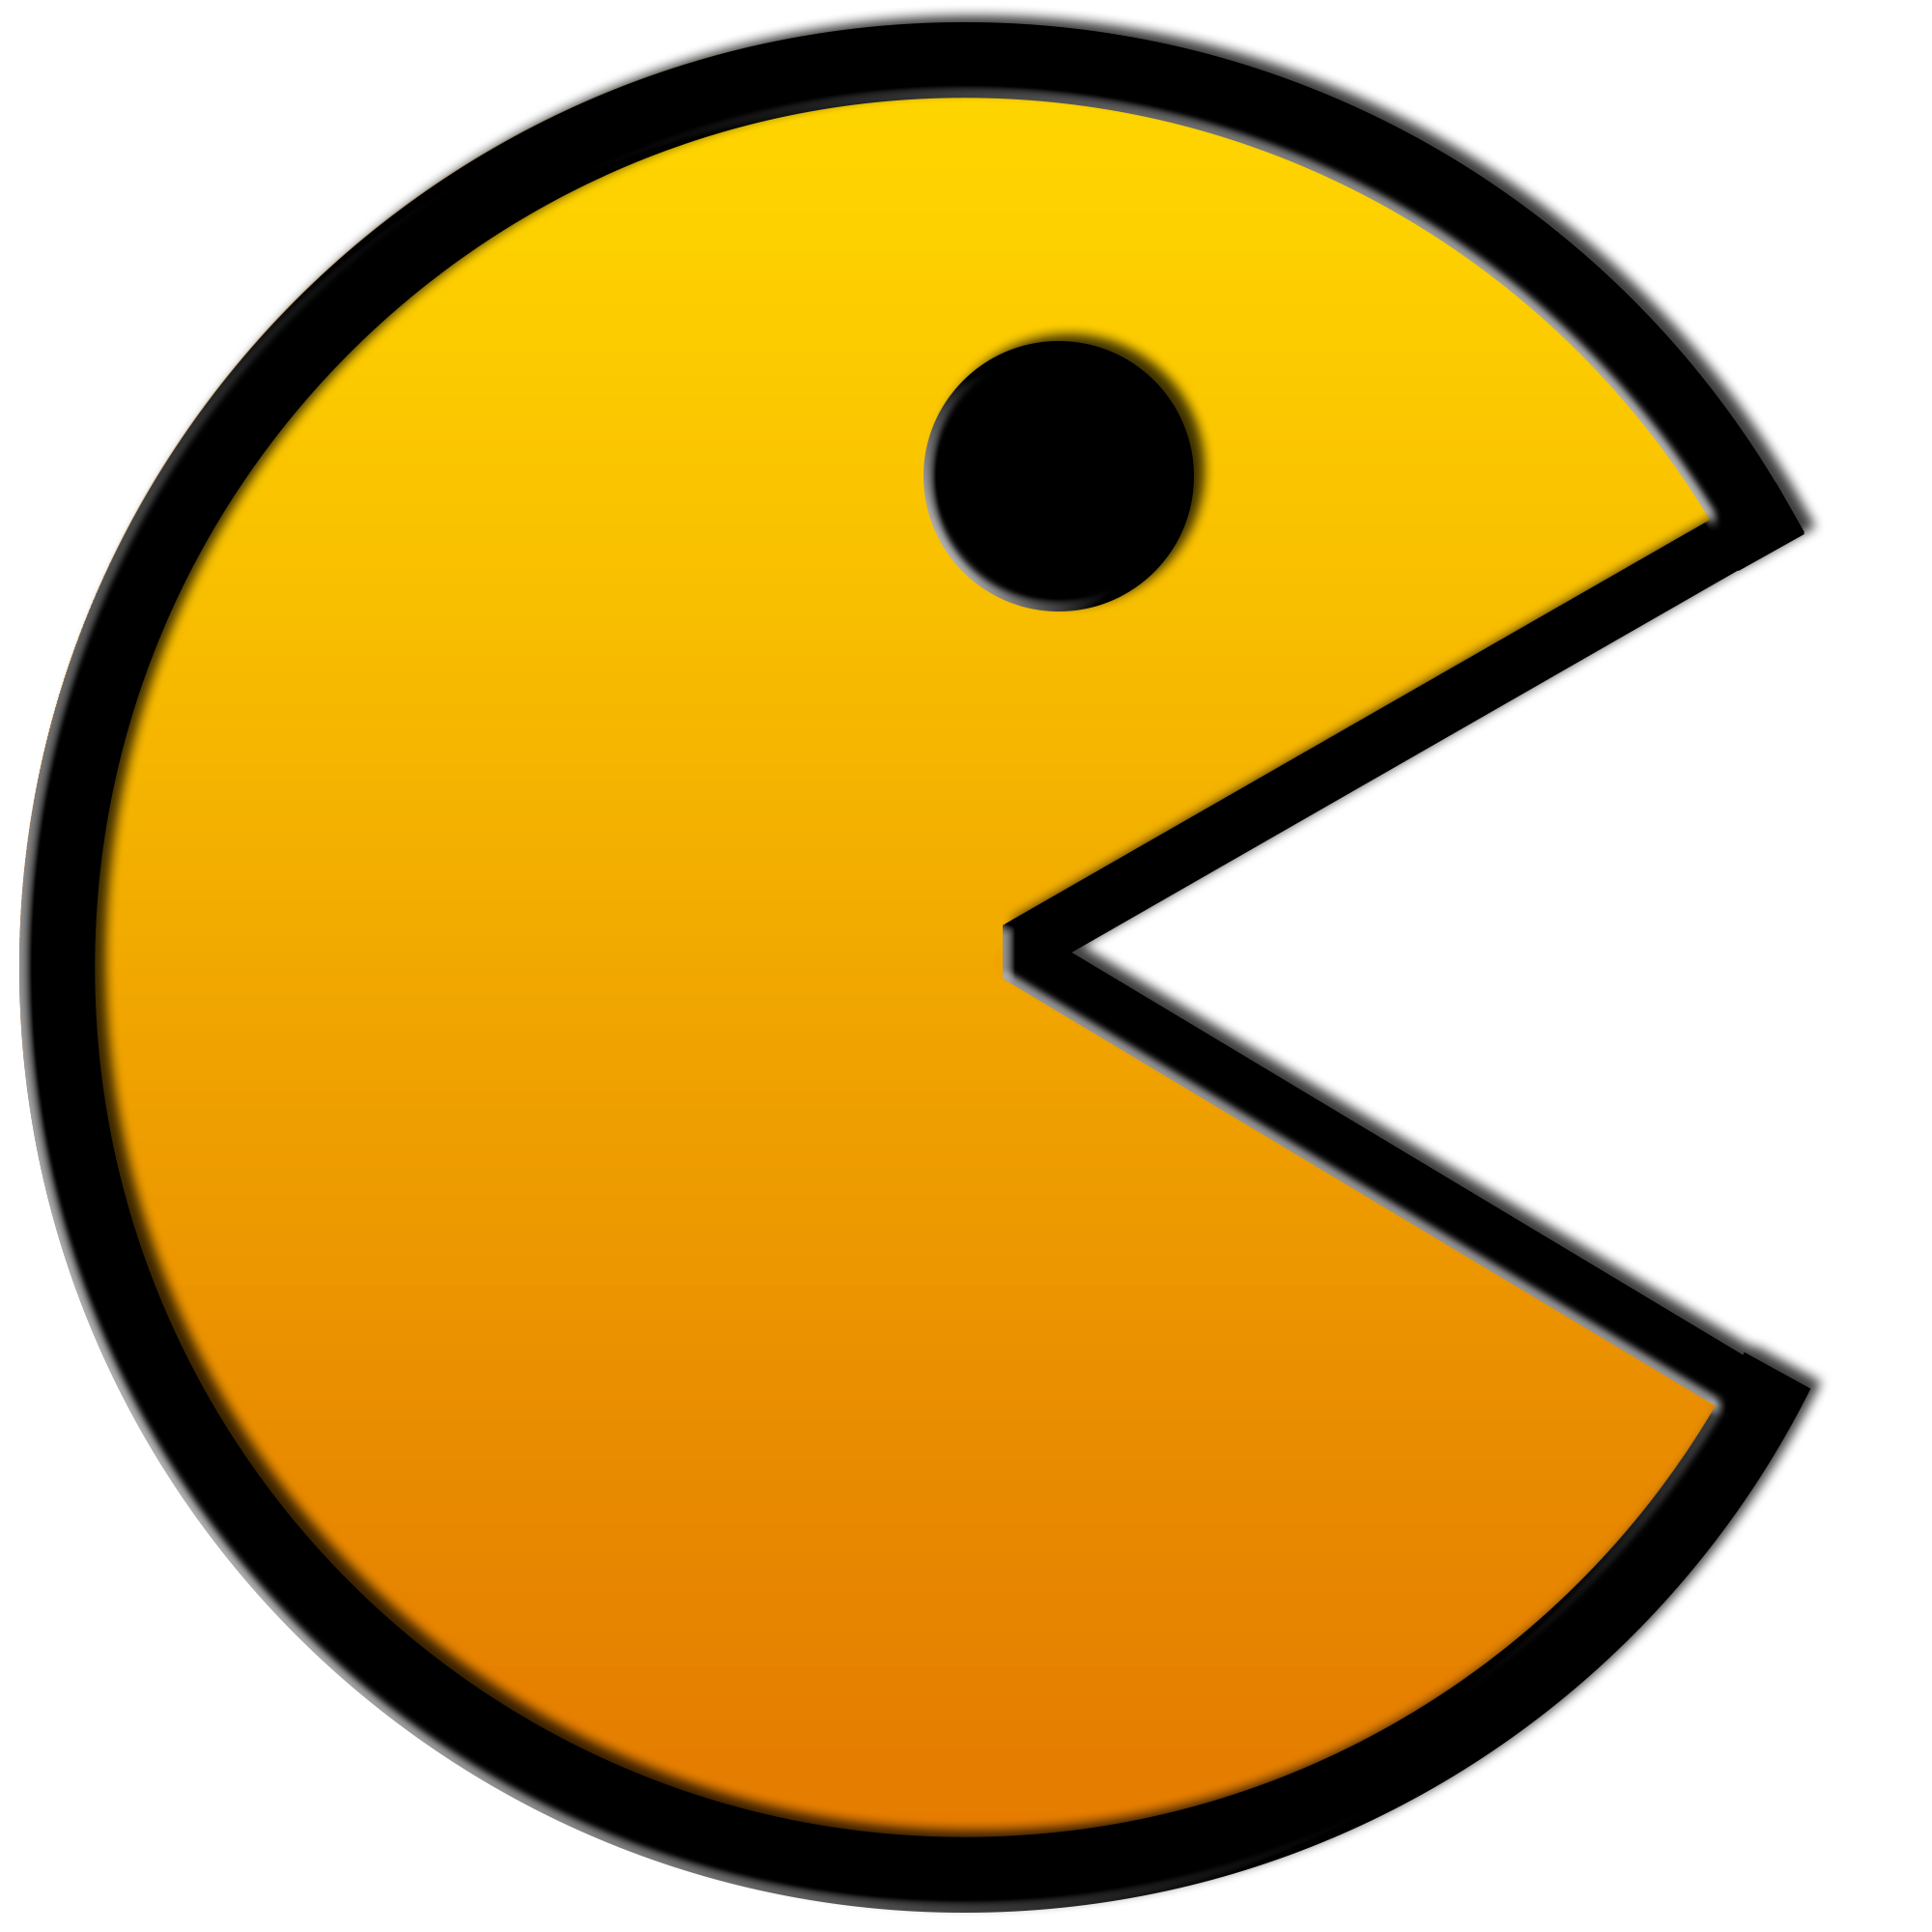 1000+ images about Pacman on Pinterest.